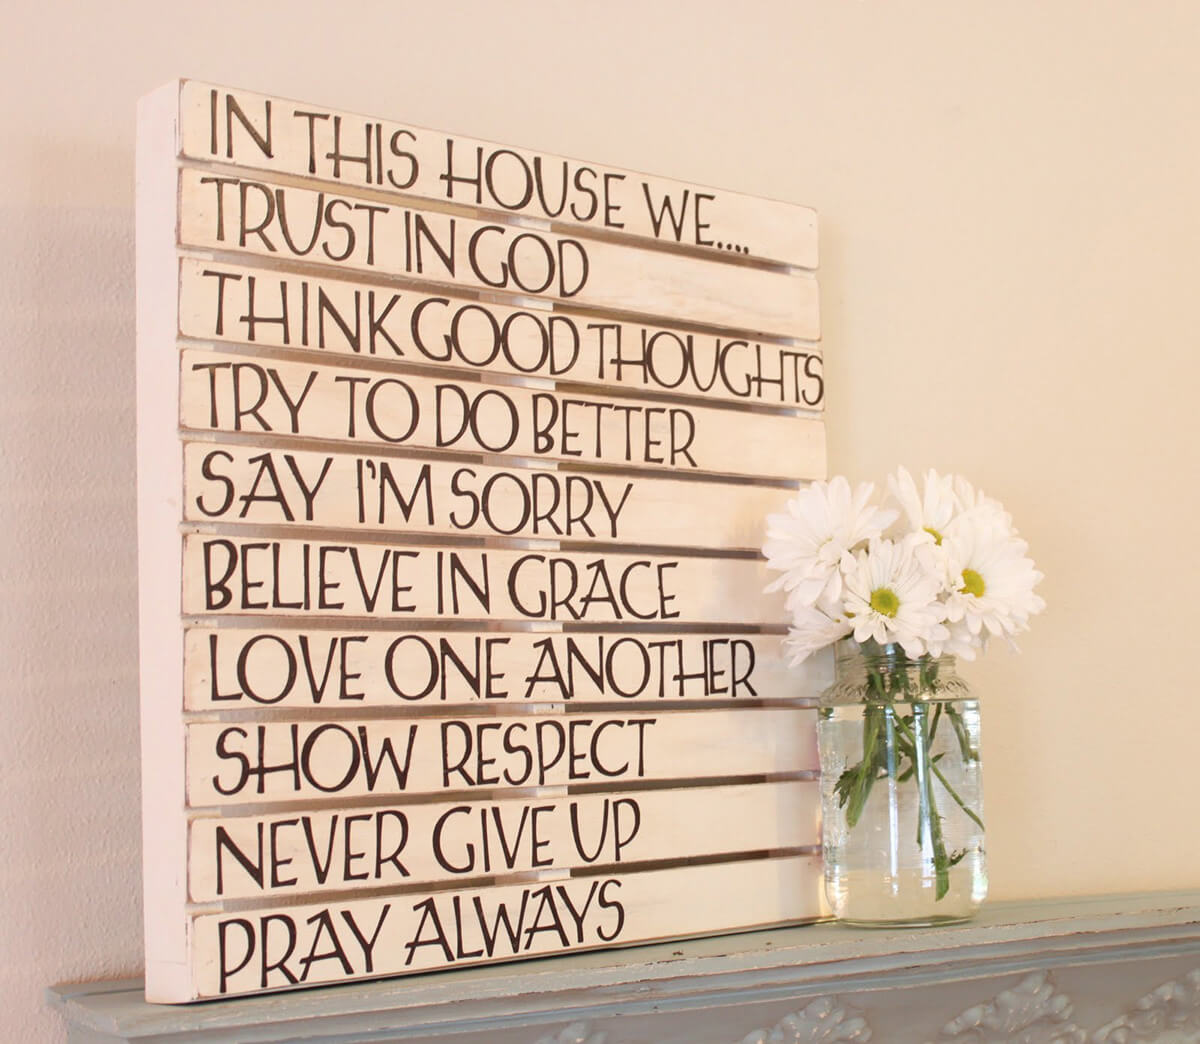 The 9 Commandments of This House